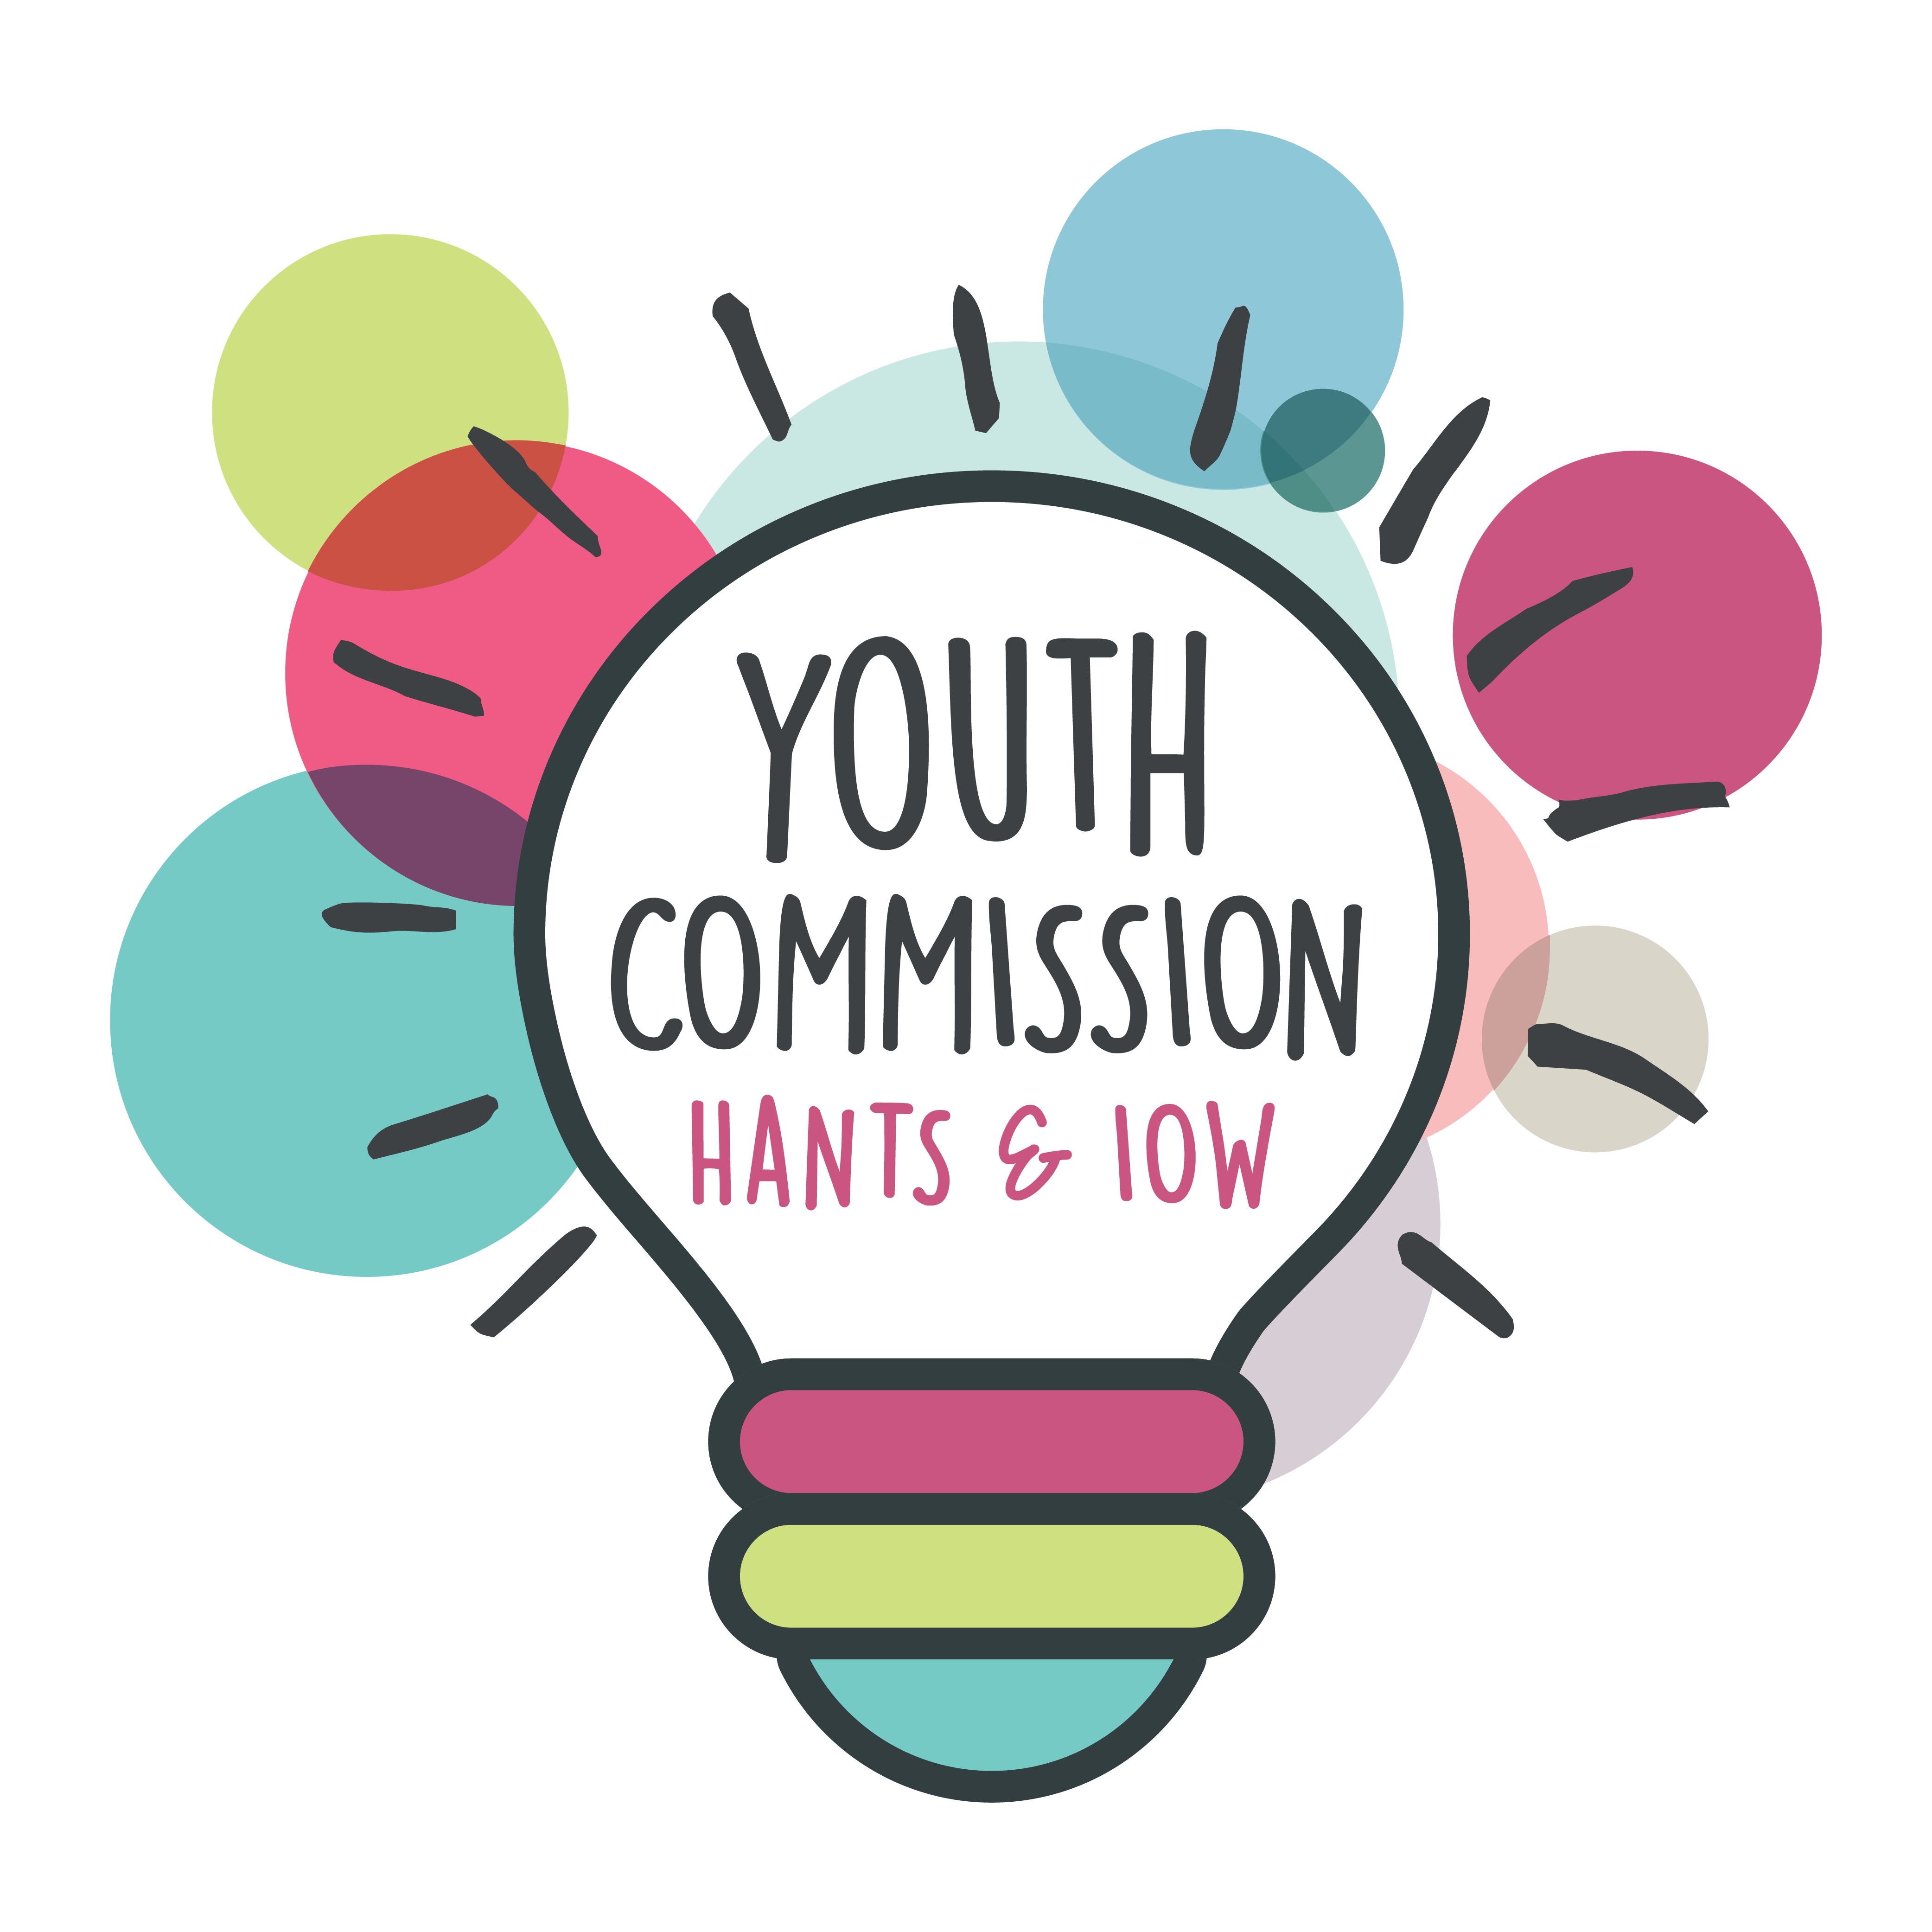 Join the Youth Commission